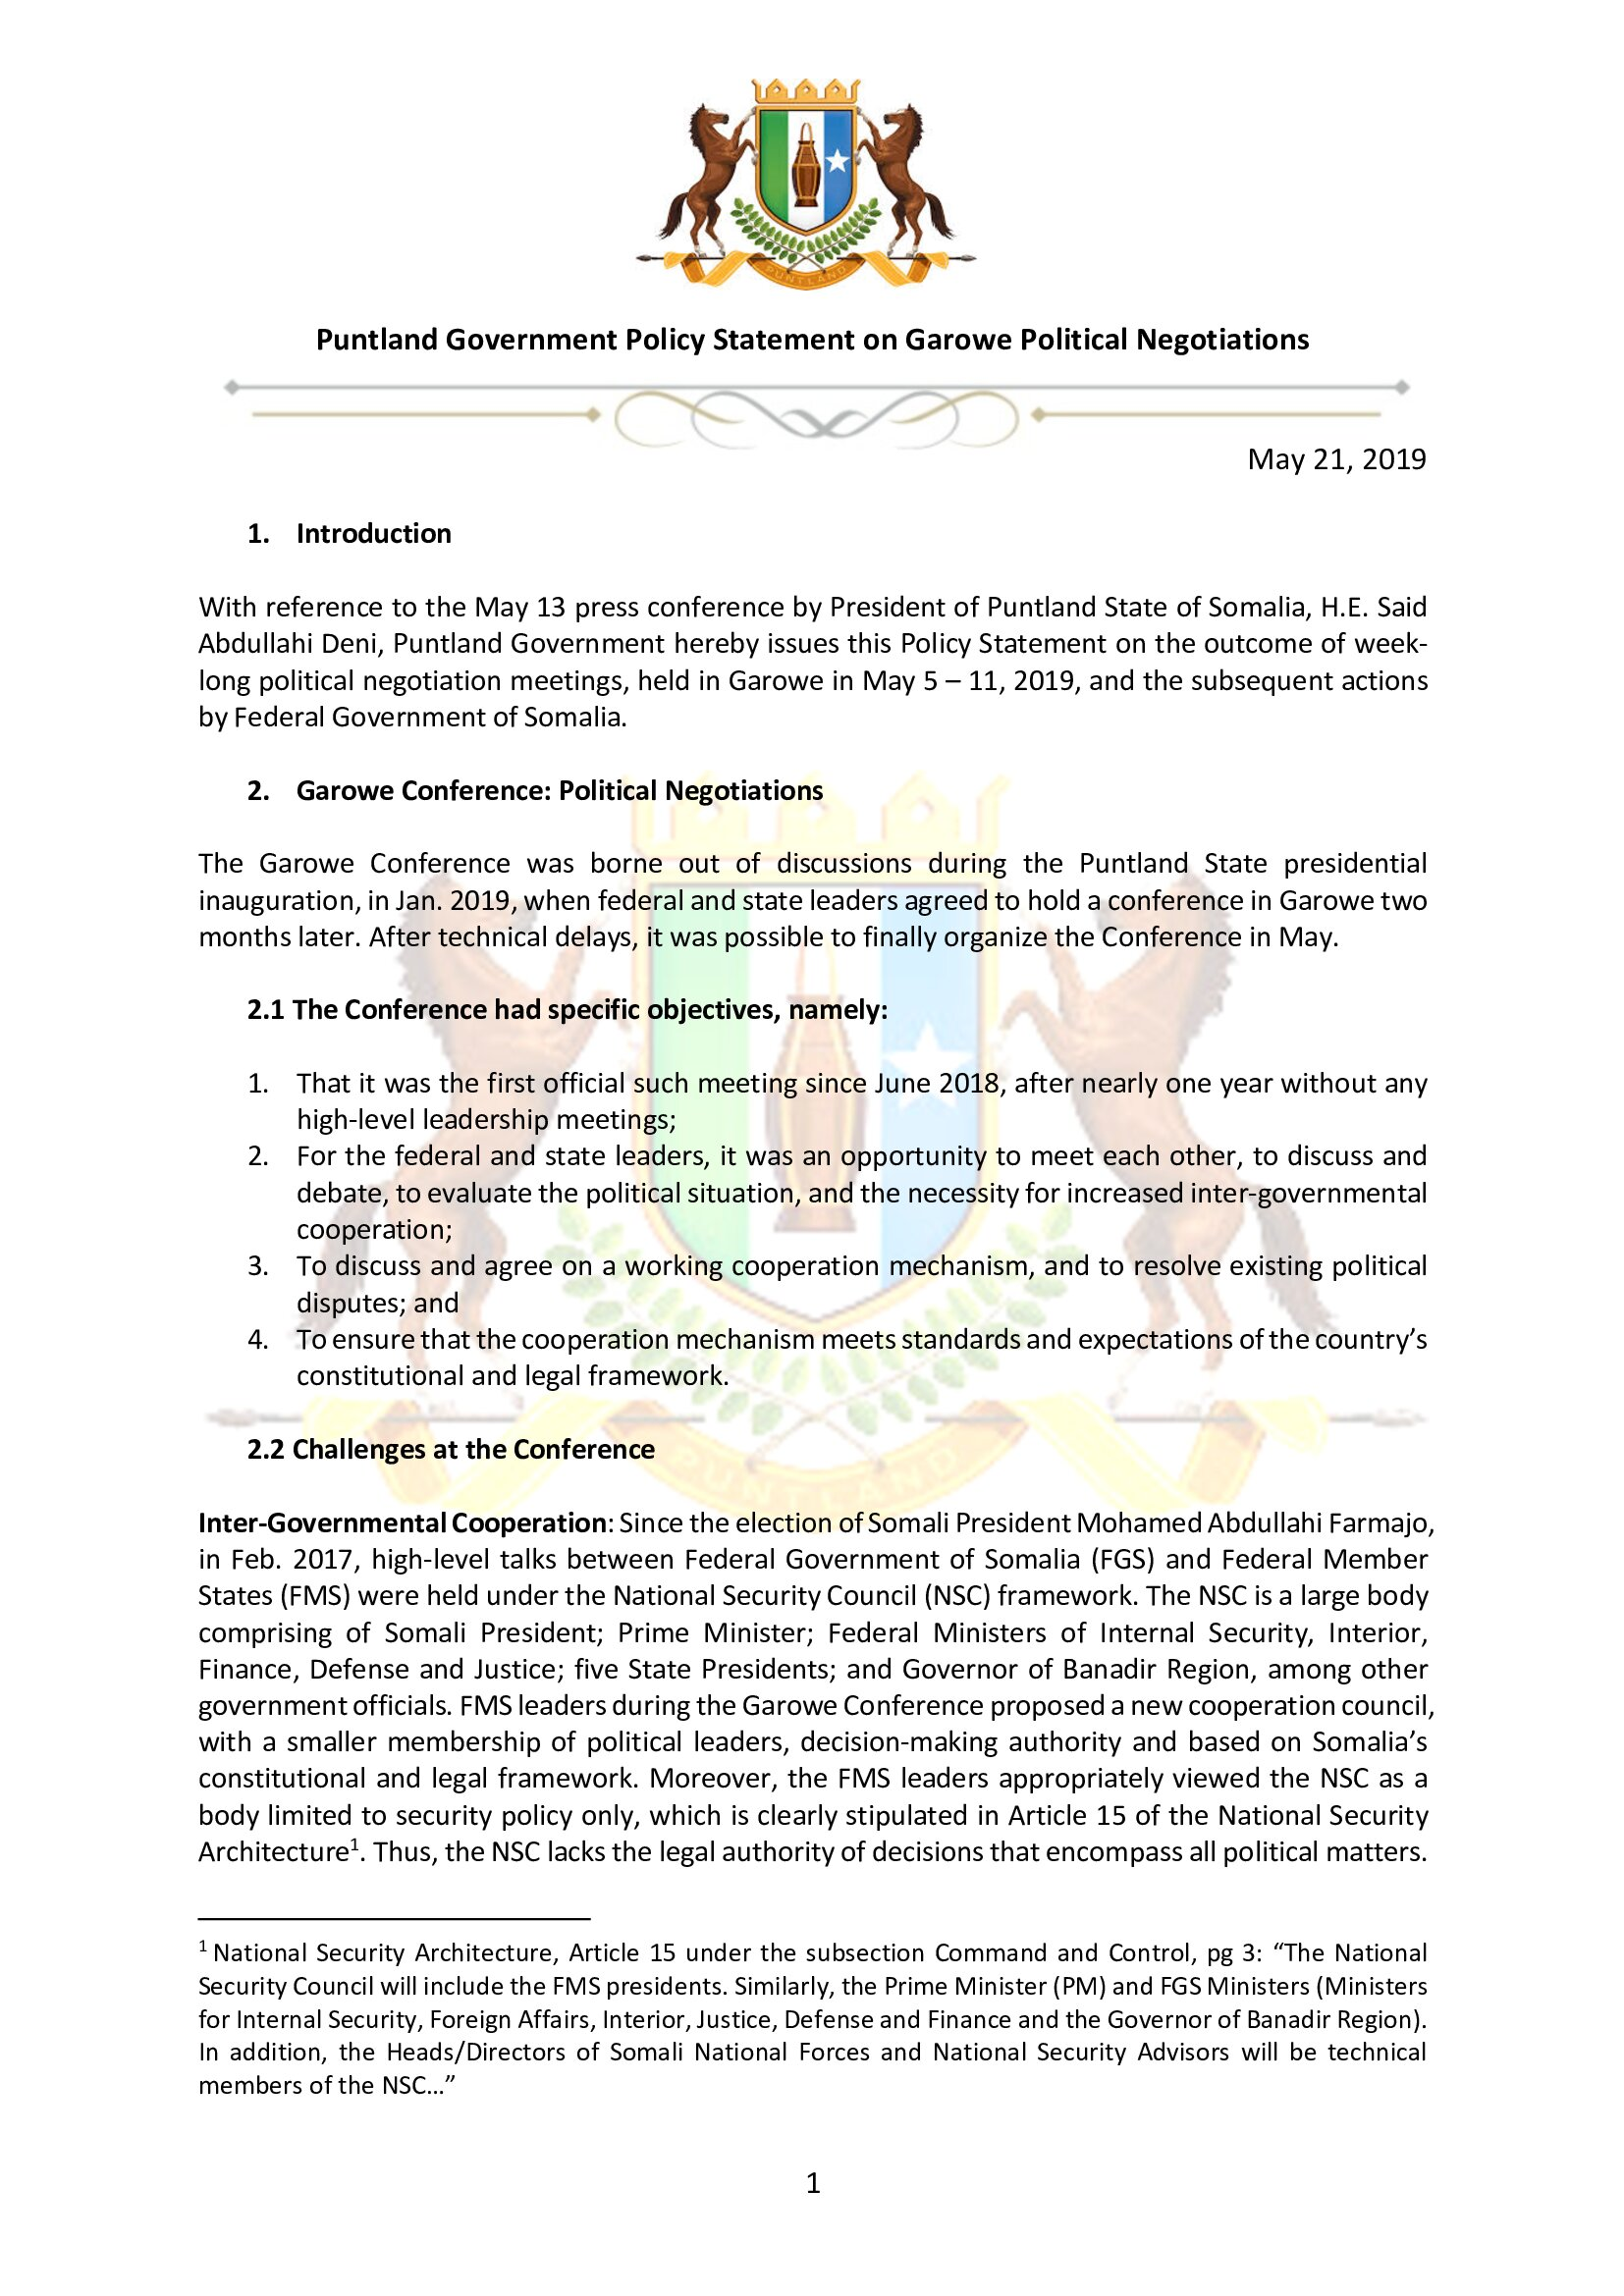 1.Puntland Position paper on Garowe conference_5-11 May 2019_000